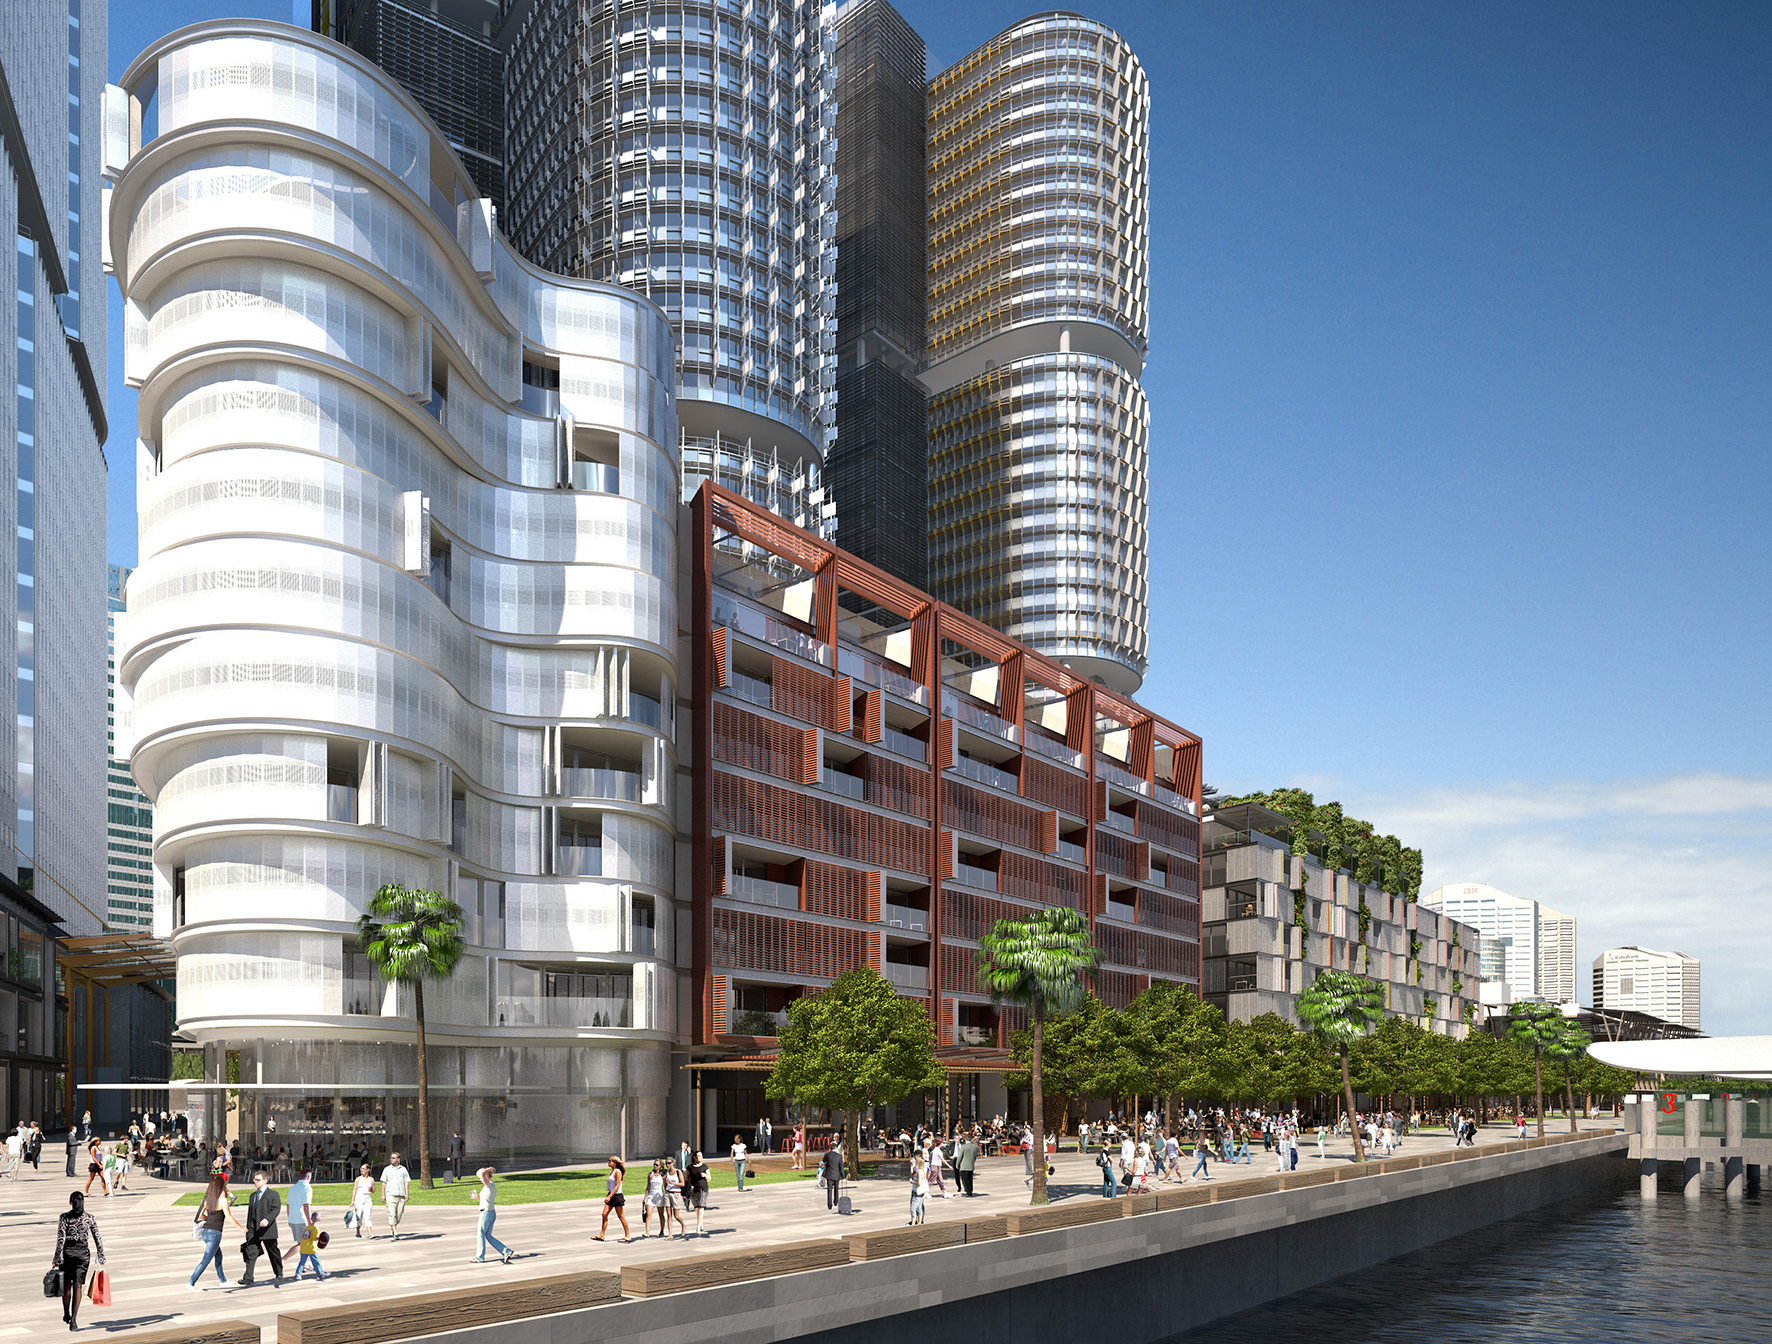 Cool Apartment Buildings. Richard Francis Jones designed apartment building at Barangaroo South apartments attract strong buyer interest  The MP Report